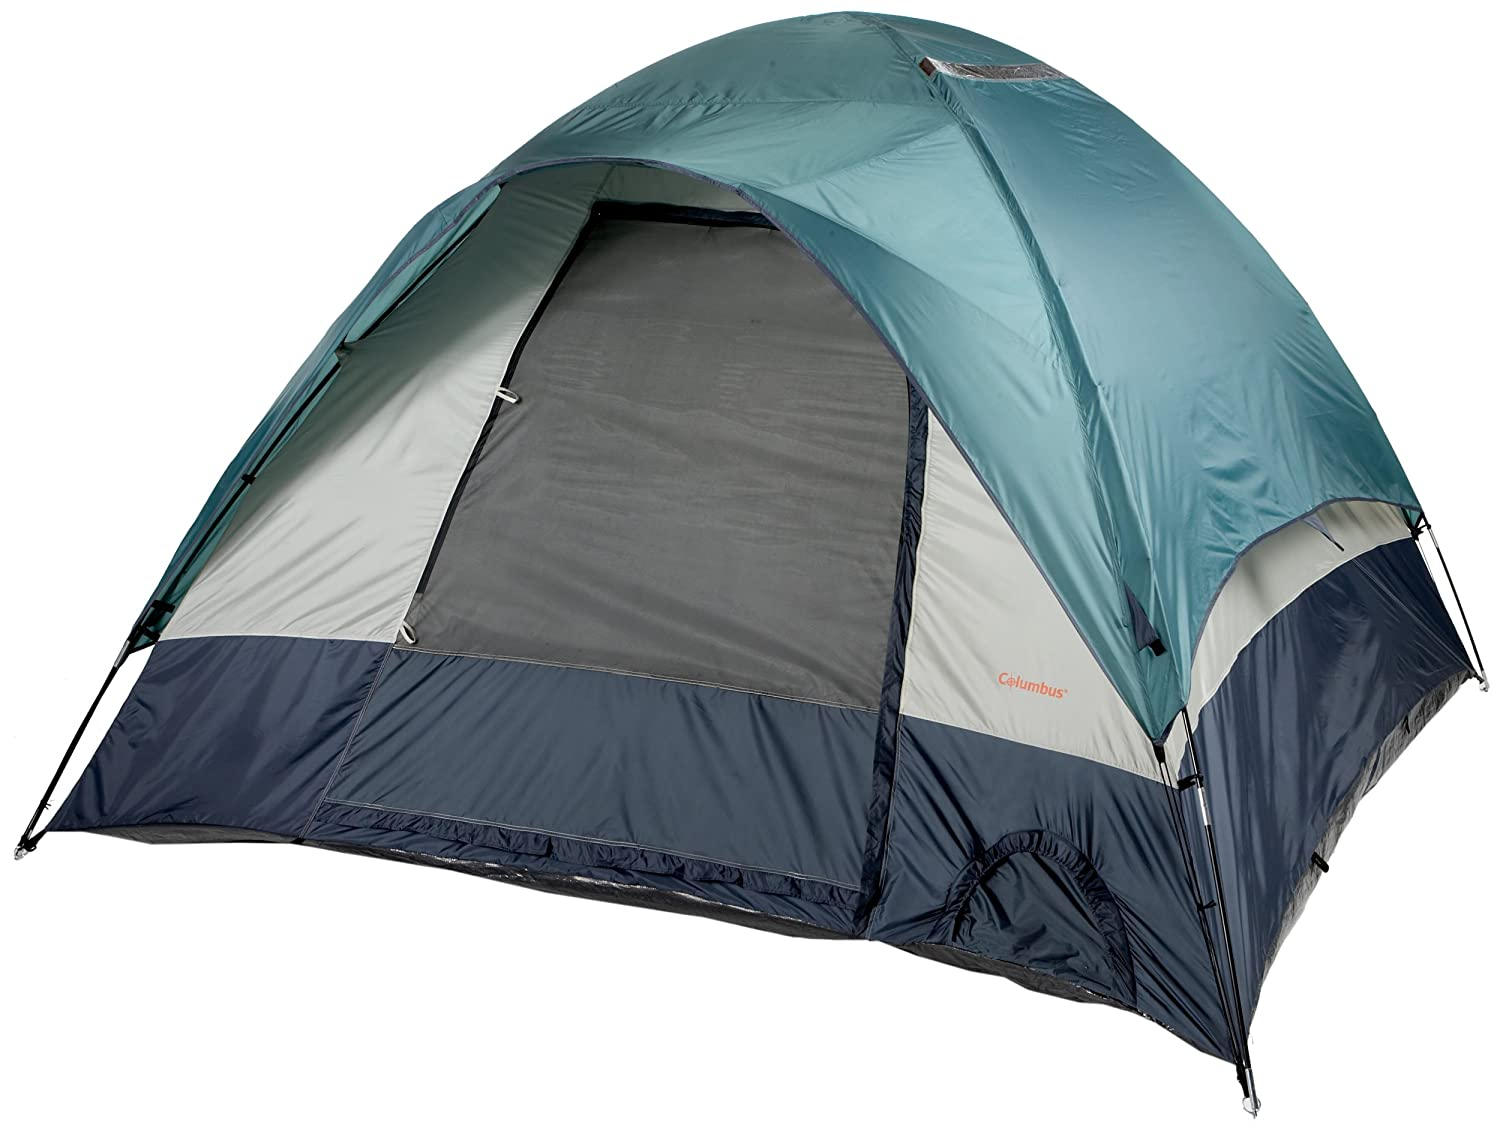 Amazon.com  Columbus Suncrest XL 10-Foot by 10-Foot Five Person Dome Tent  Family Tents  Sports u0026 Outdoors  sc 1 st  Amazon.com & Amazon.com : Columbus Suncrest XL 10-Foot by 10-Foot Five Person ...